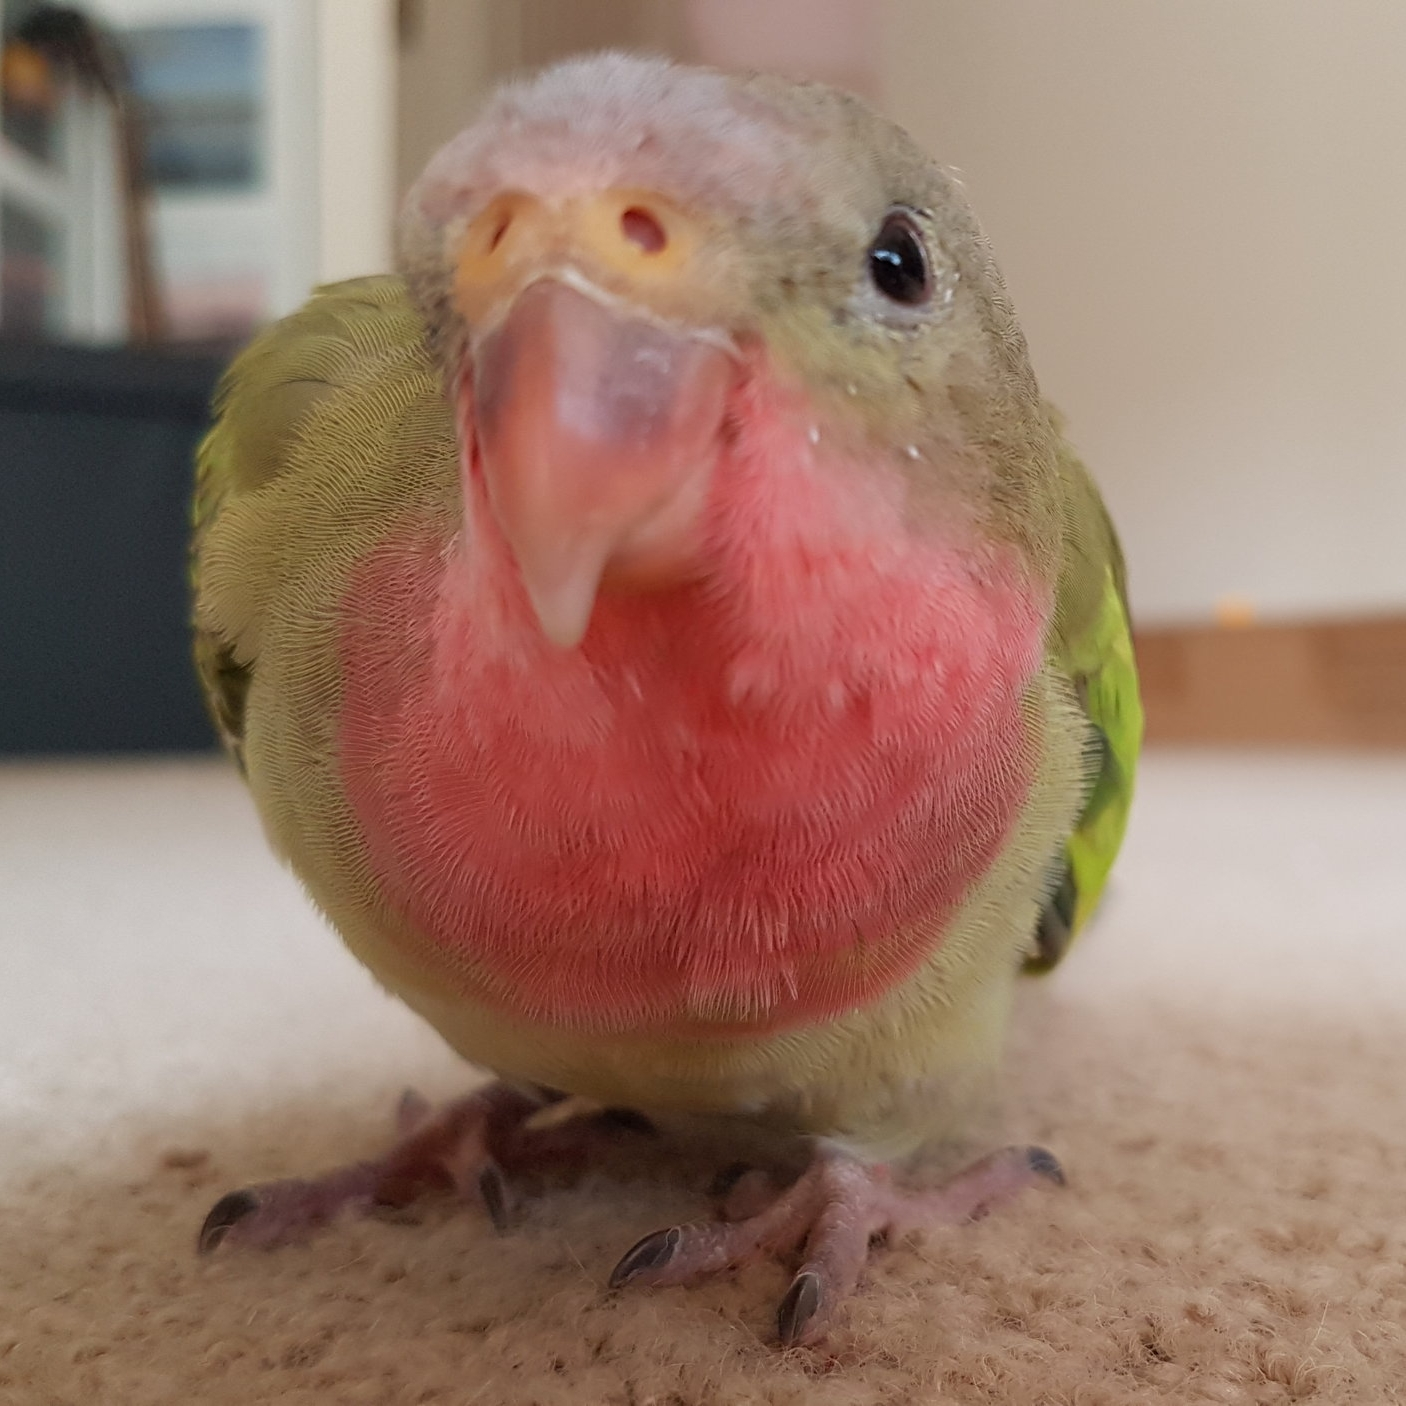 GIDGET, Princess of Wales Parrot, female, born 2015